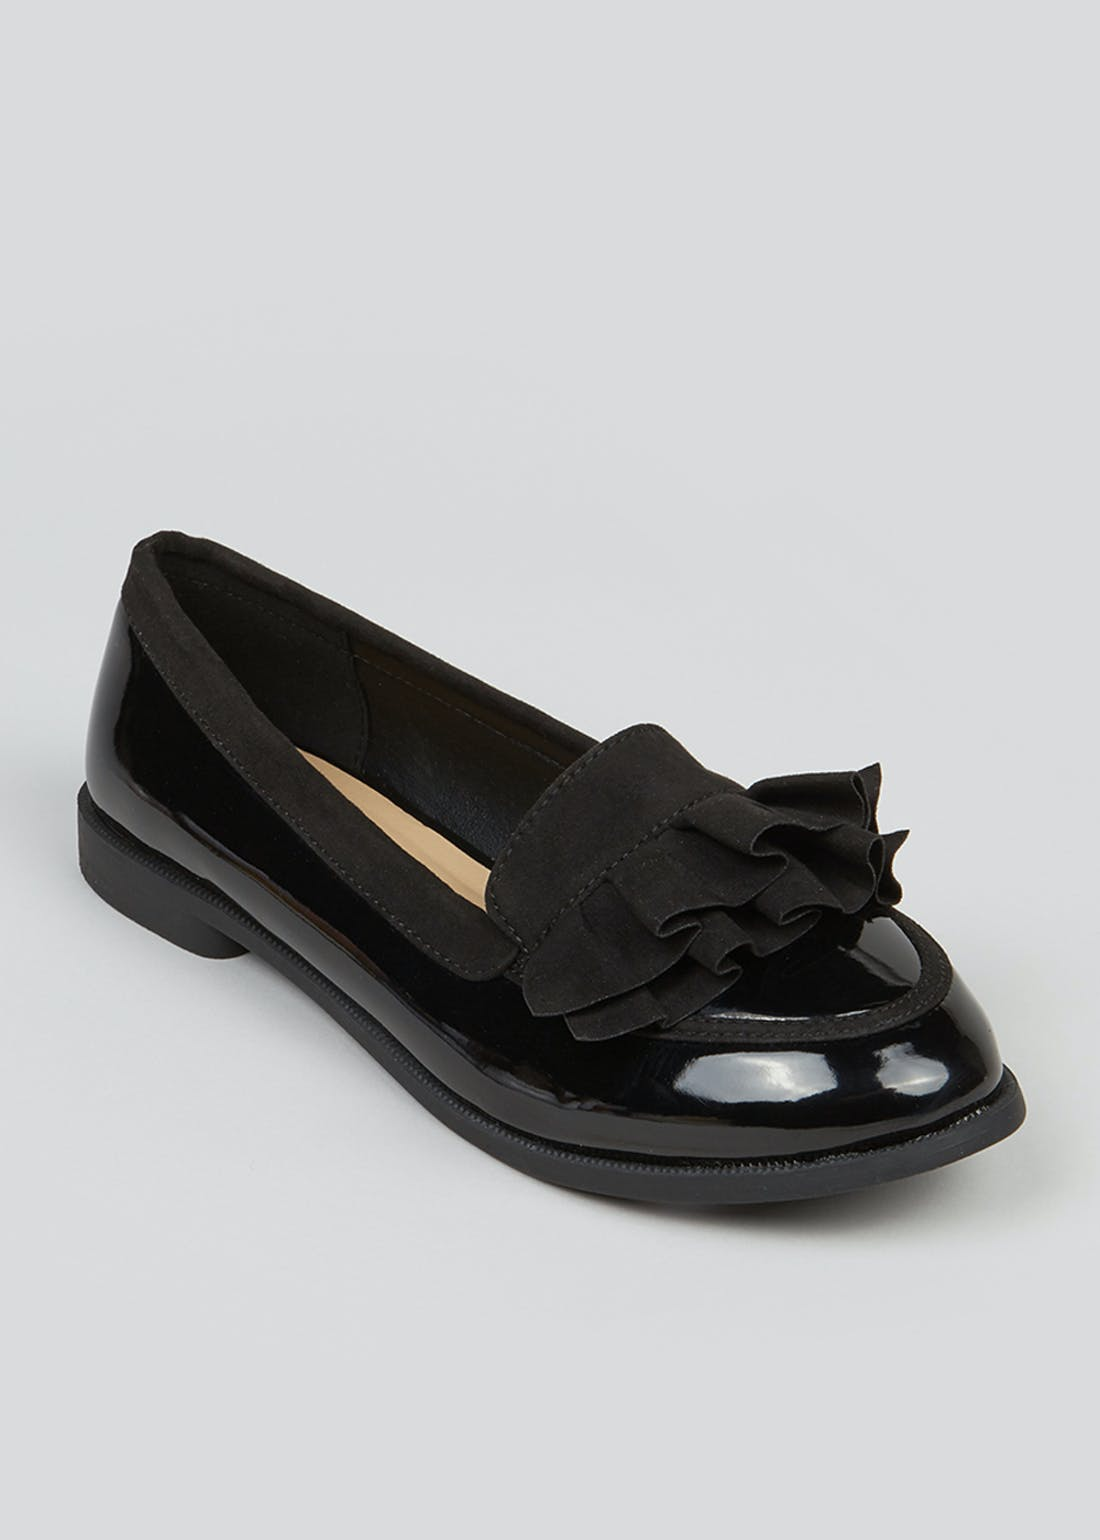 Black Patent Ruffle Loafers